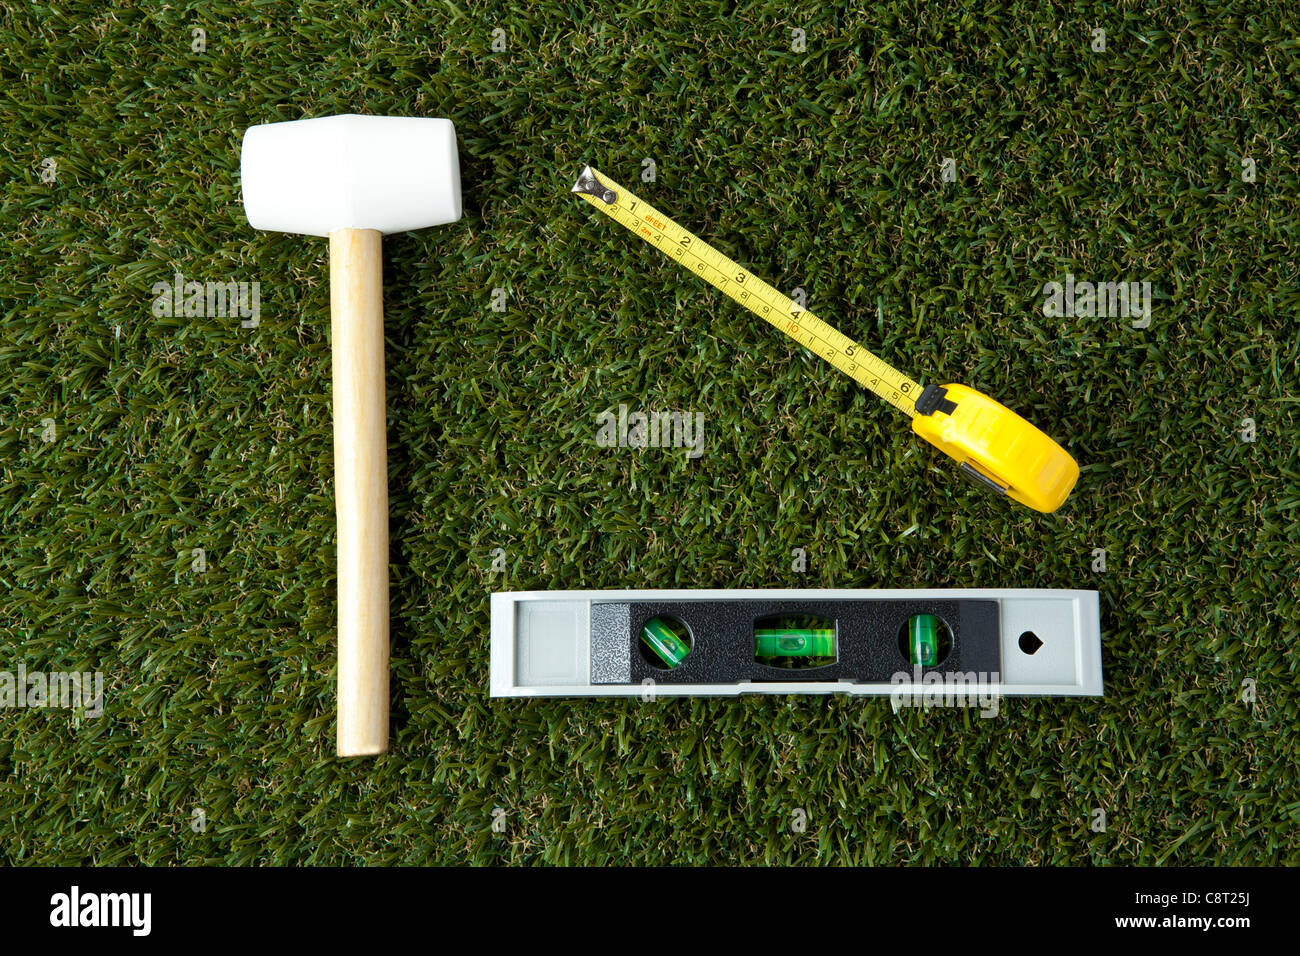 Top view of instruments of measurement with hammer on grass - Stock Image